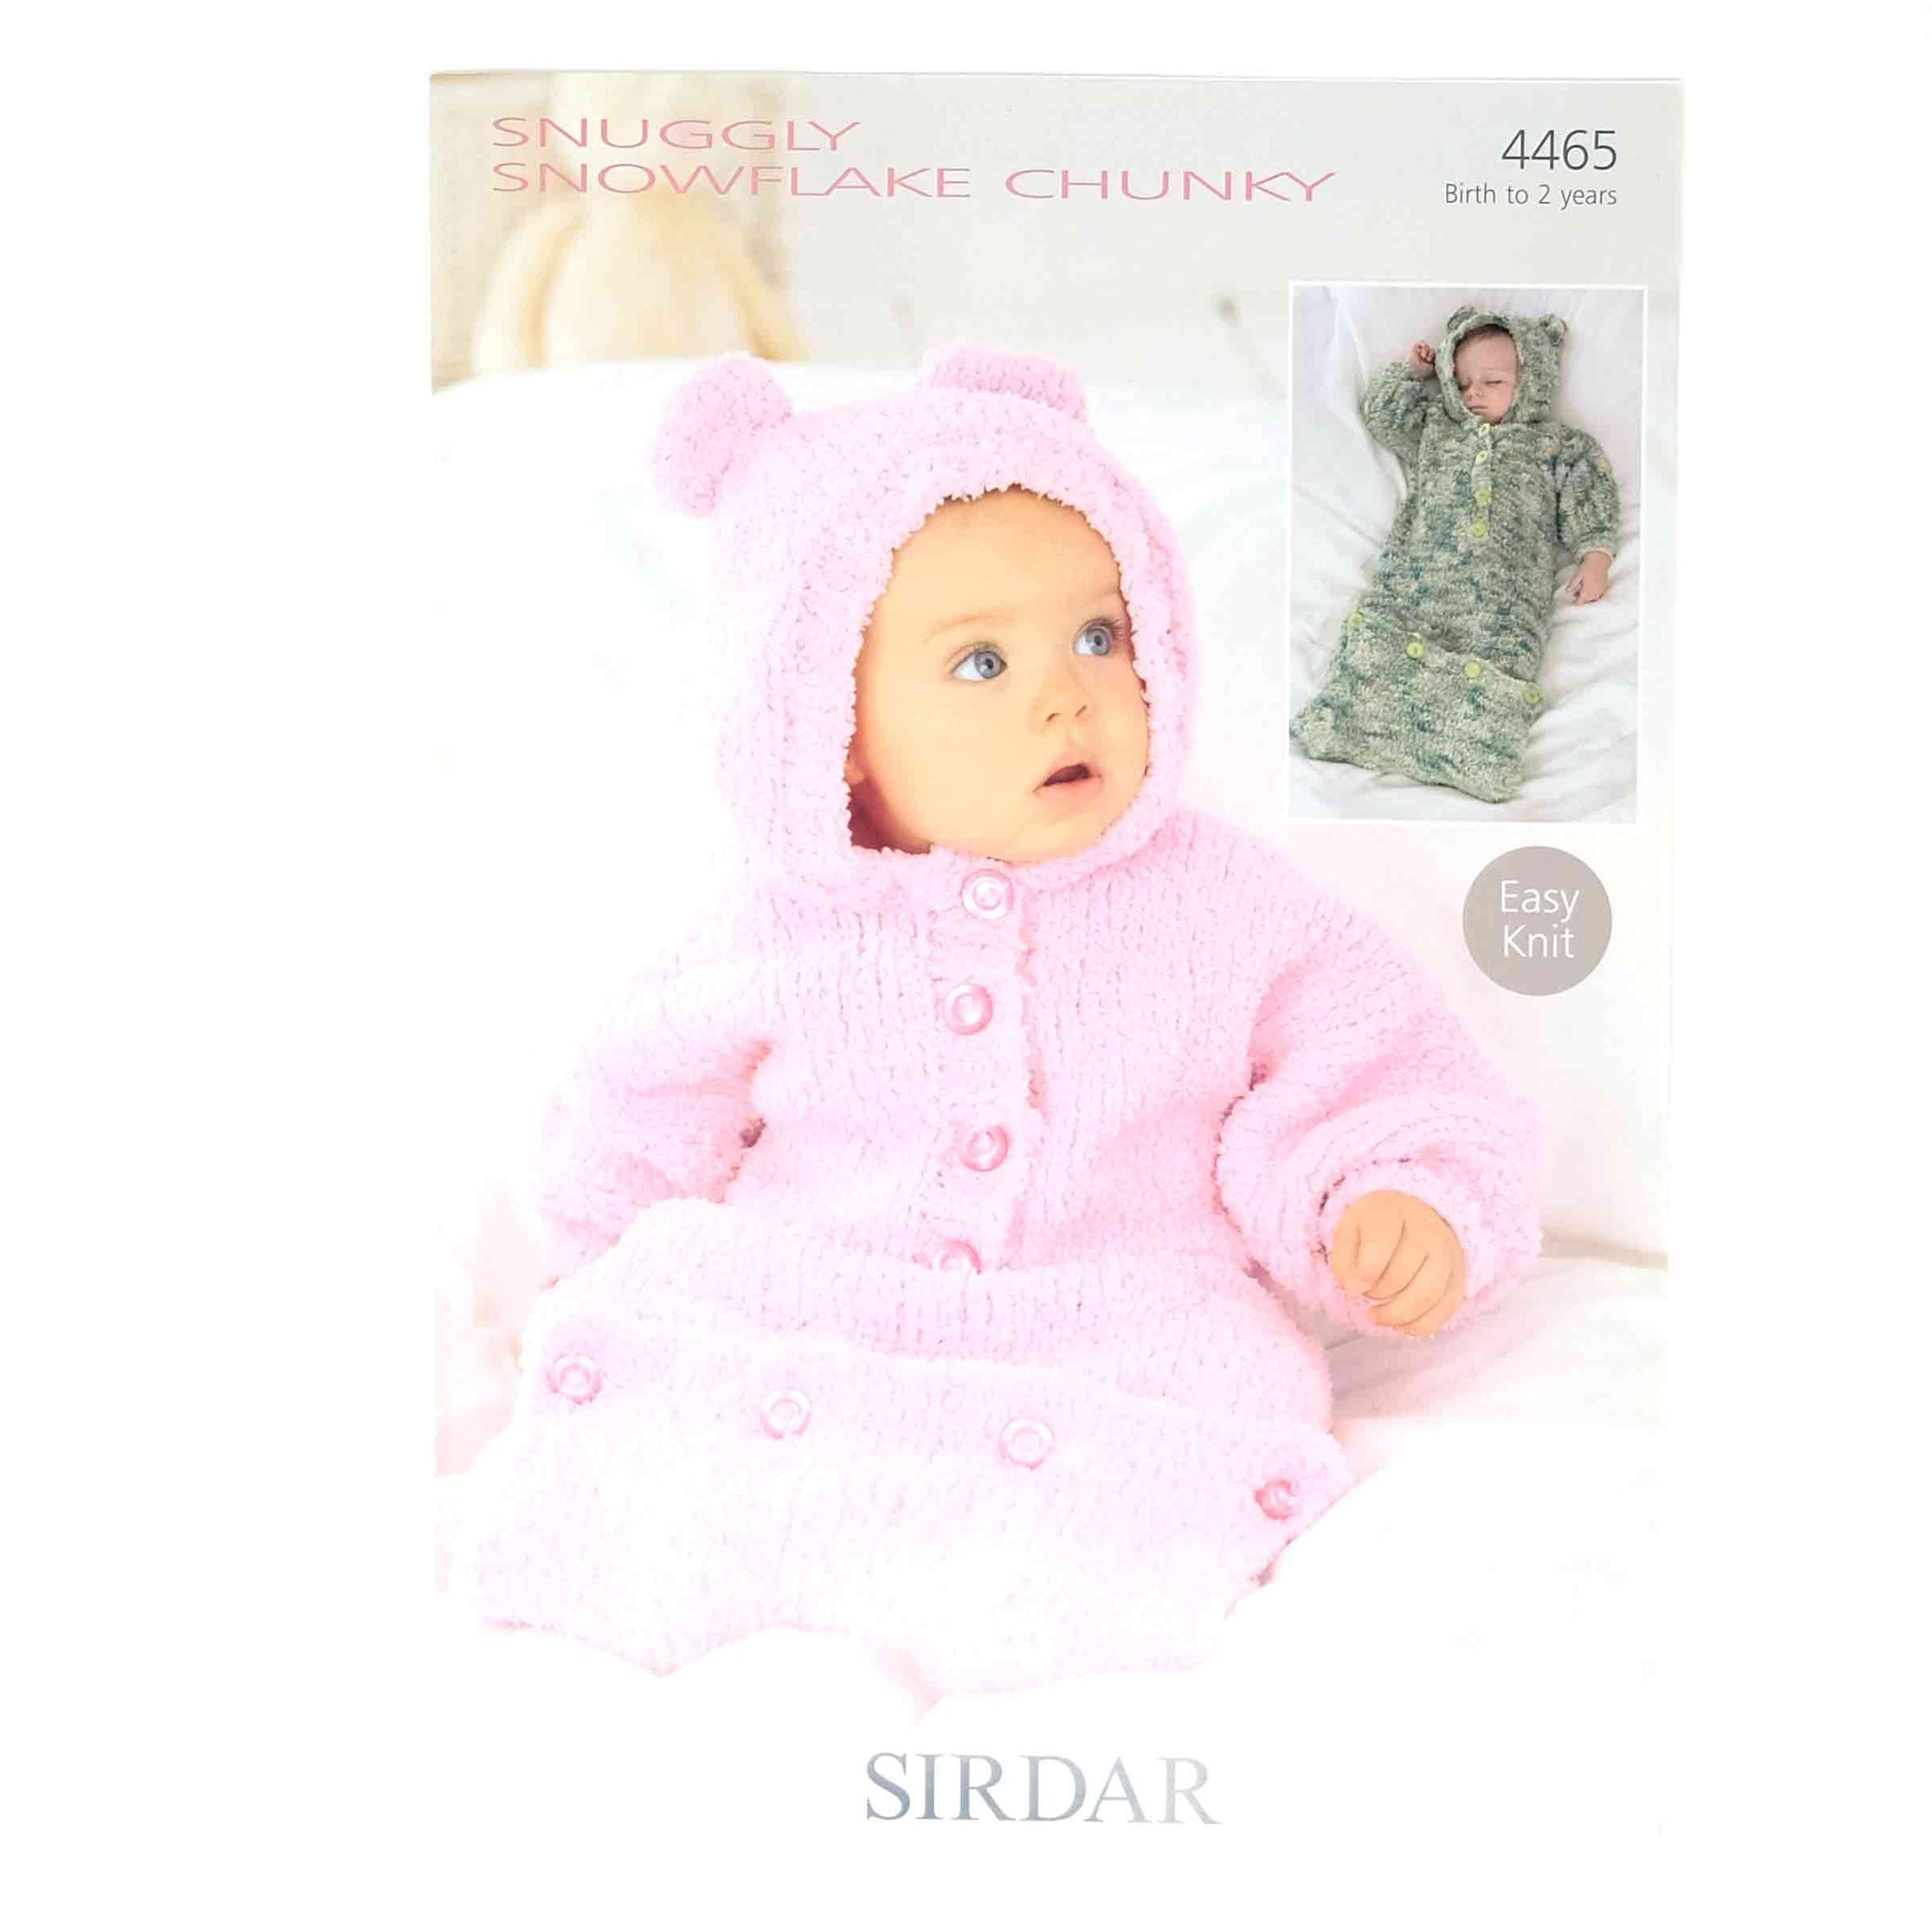 Sirdar Snuggly Snowflake Chunky Pattern 4465 Sleeping Bag